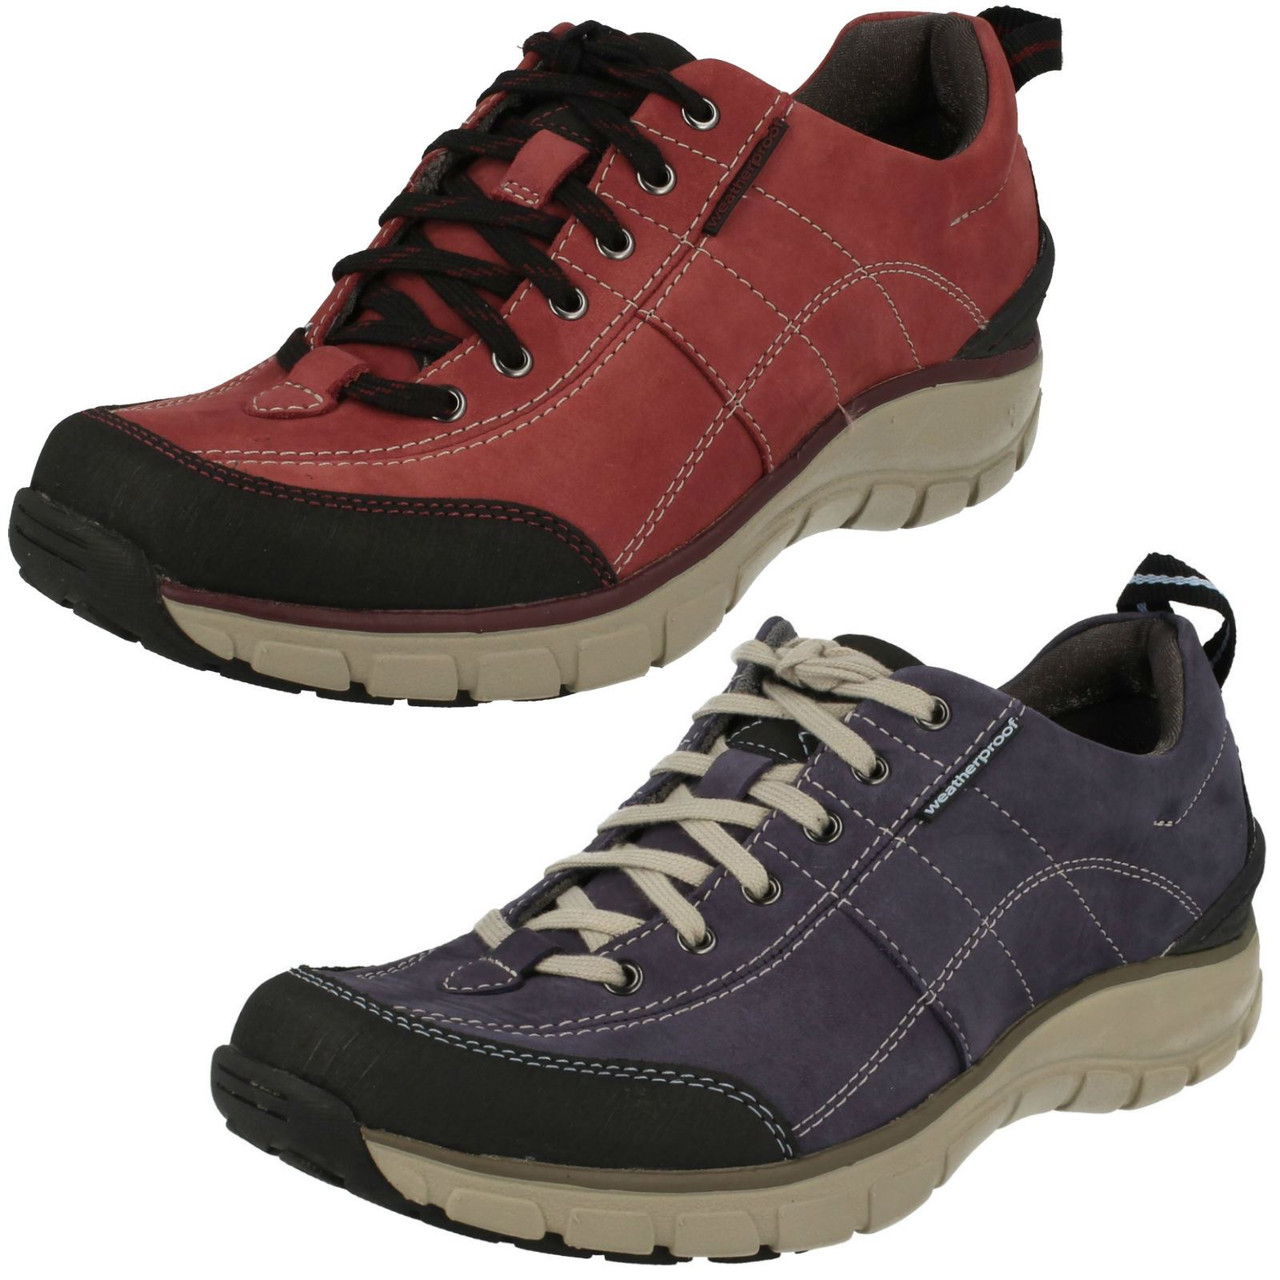 Ladies Clarks Active Wear Casual Shoes